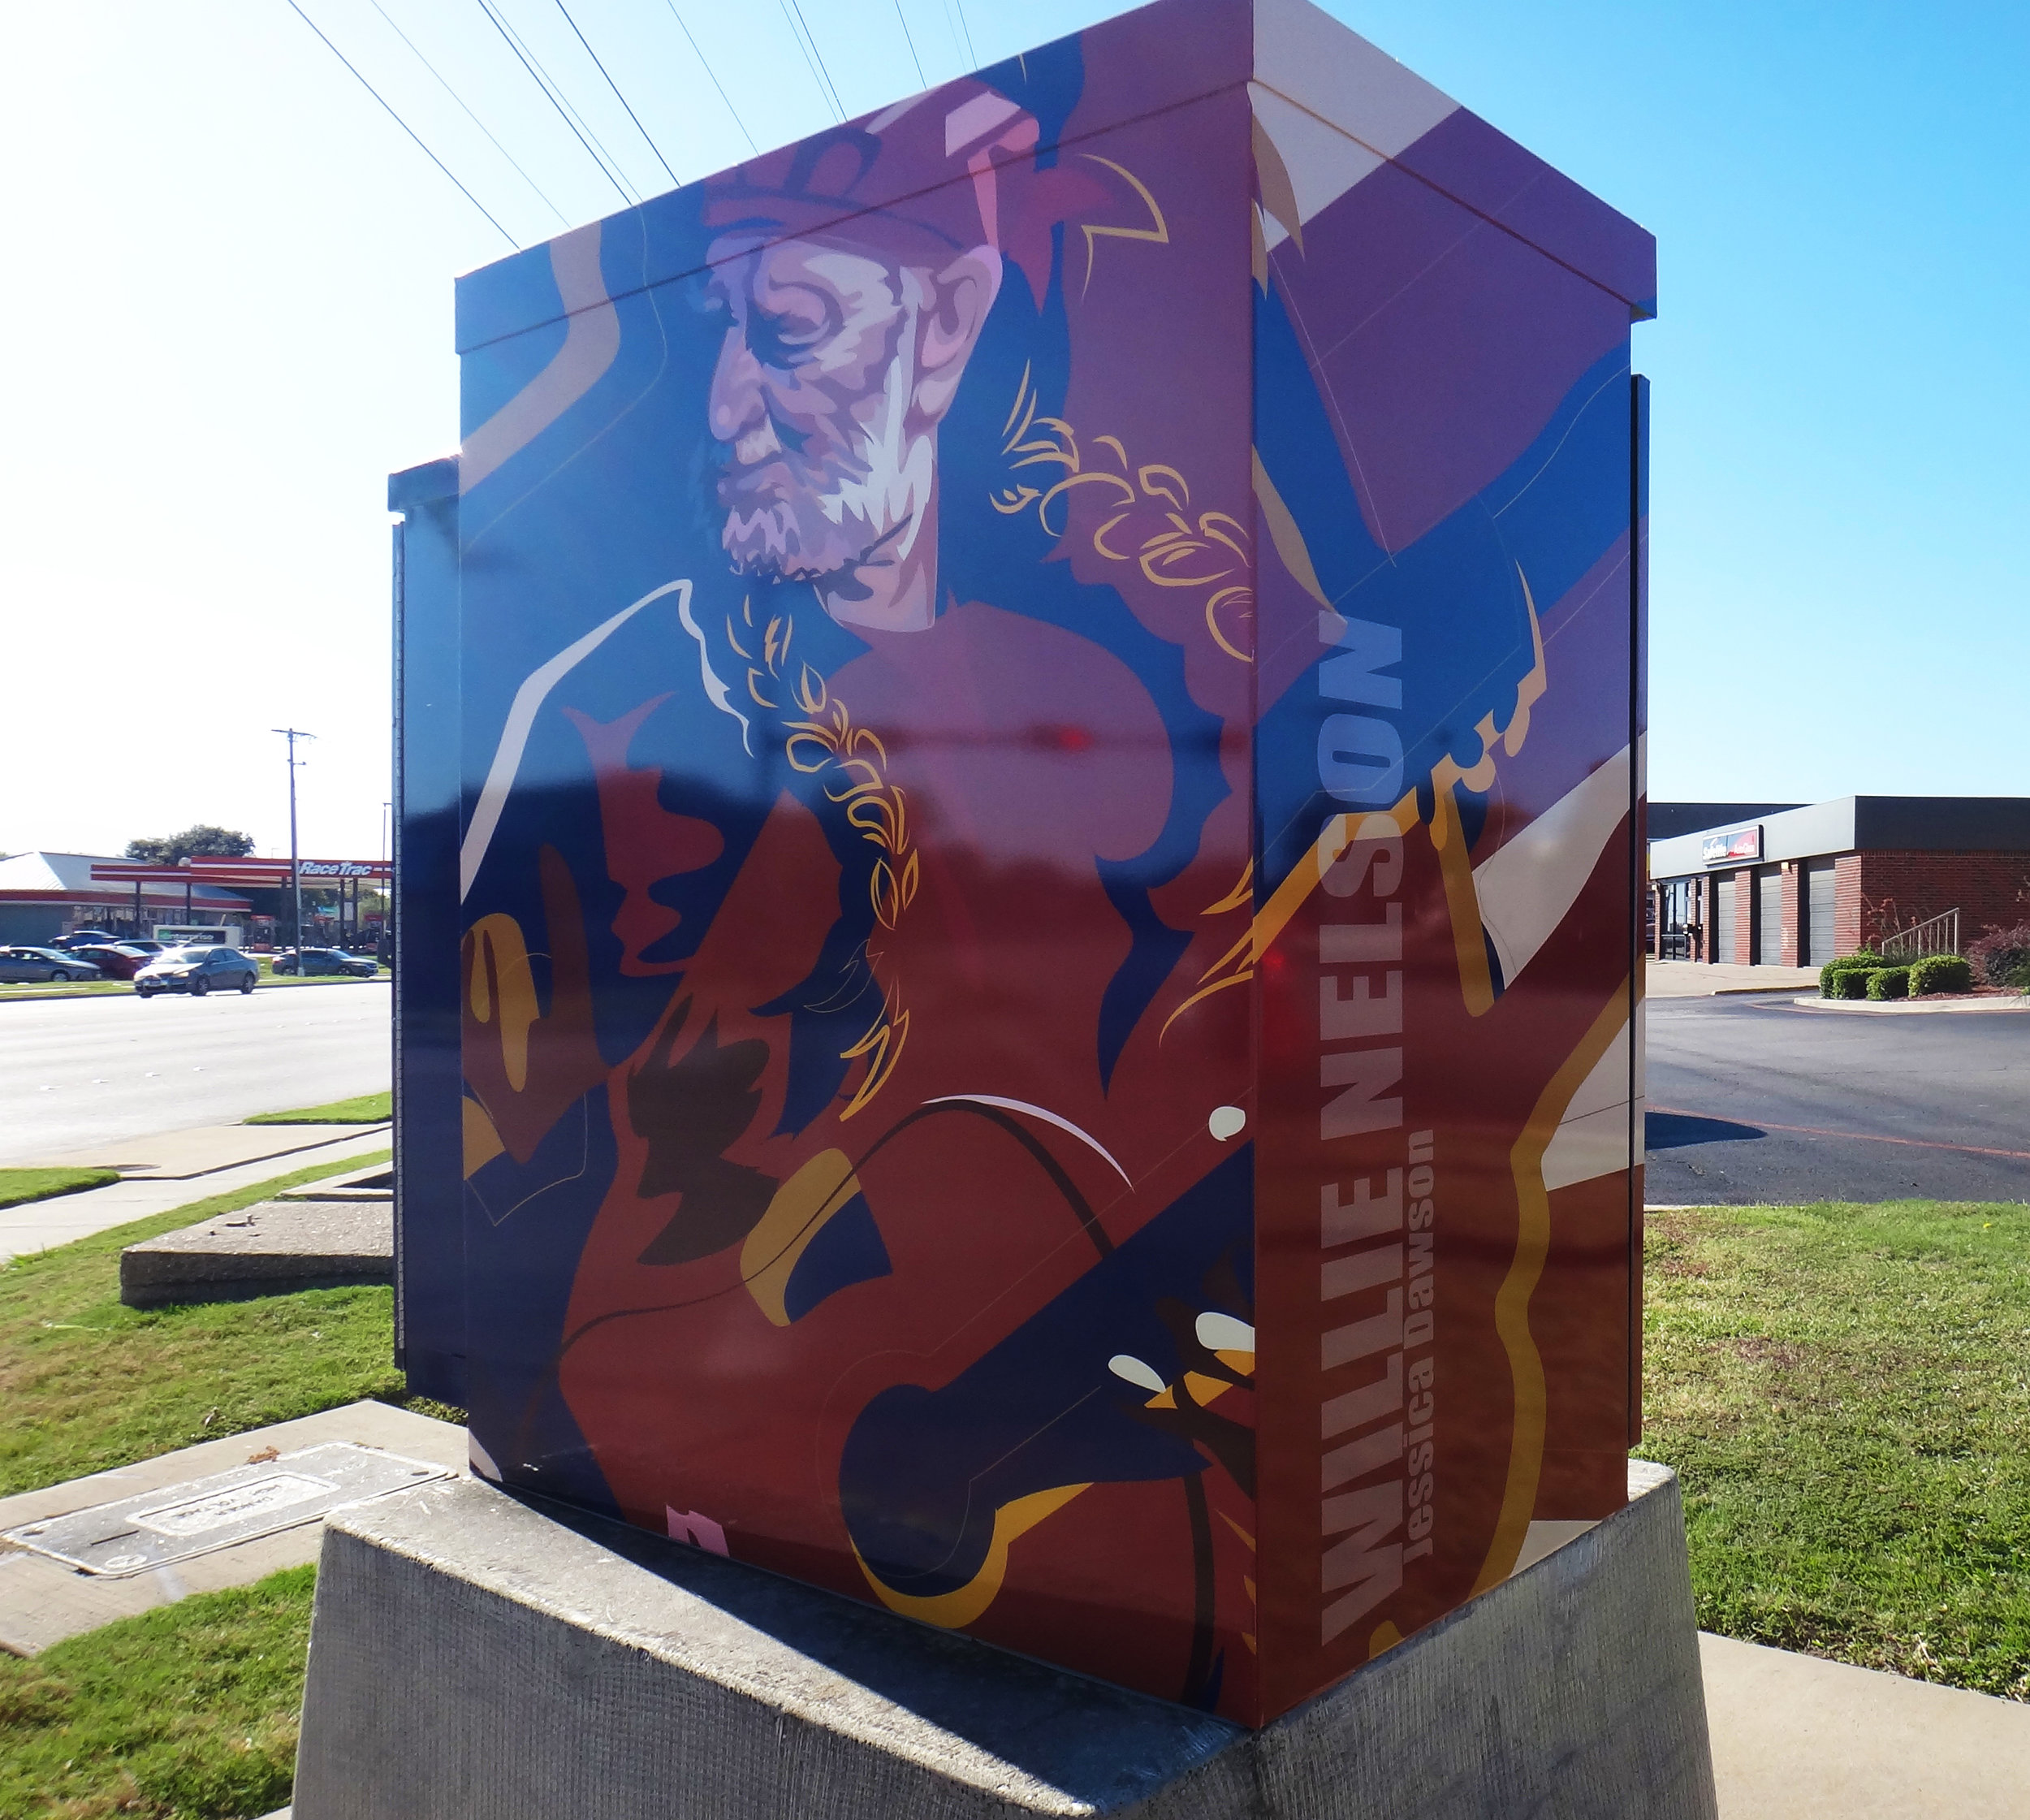 Willie Nelson. Located in North Richland Hills, TX. on Rufe Snow Dr. and Iron Horse Blvd. 2016.